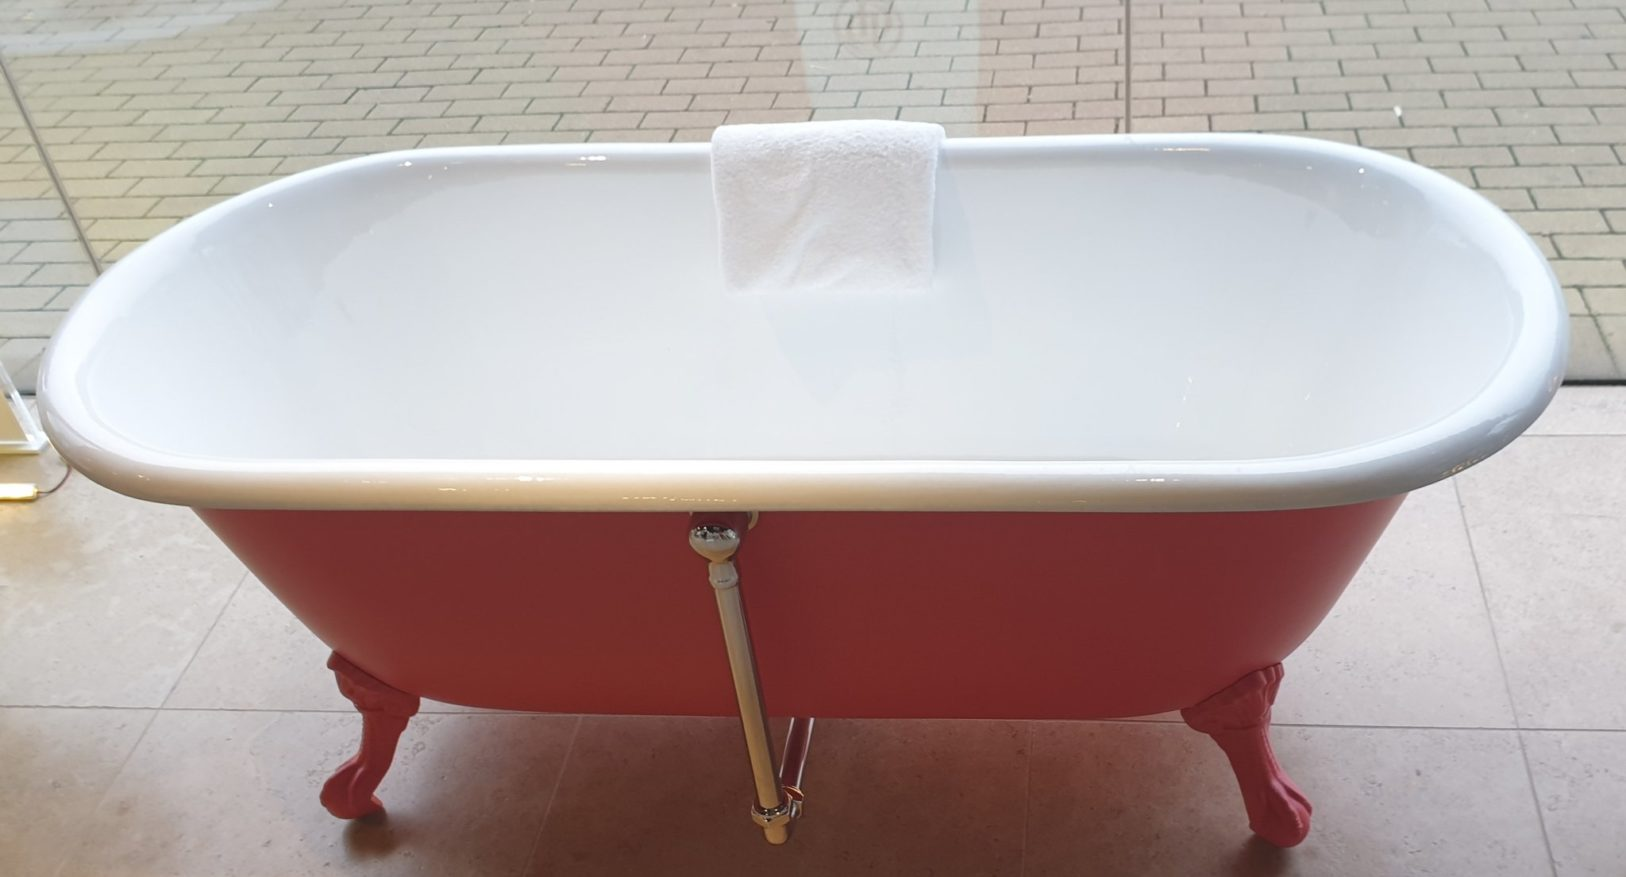 The Swale Cast Iron Bath Tub With Ball & Claw Feet